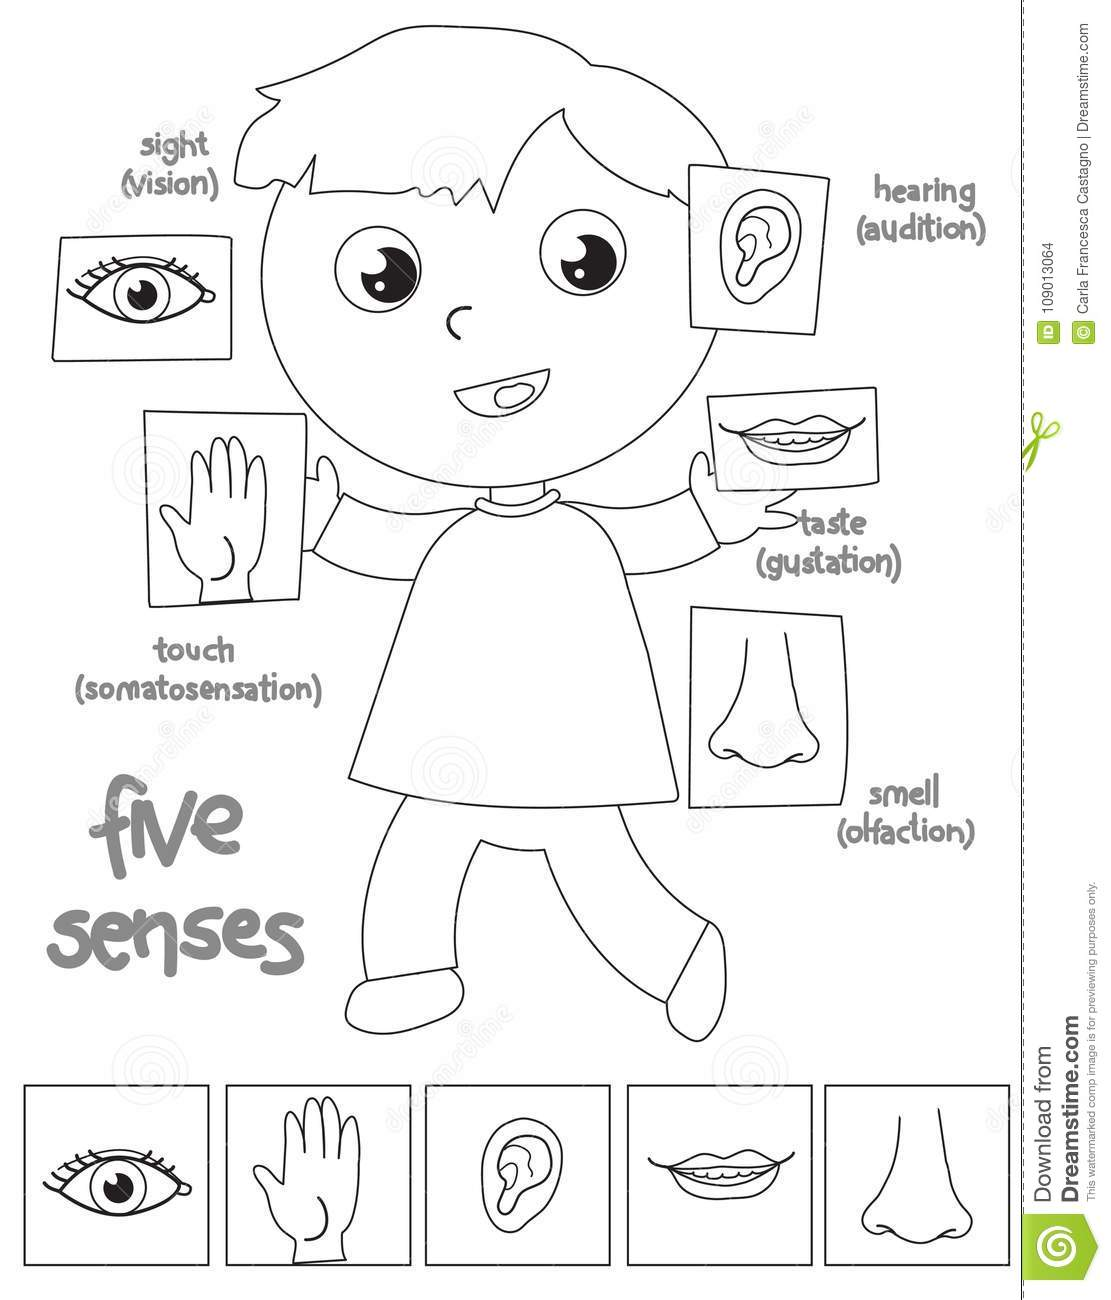 Five Senses Boy Coloring Illustration Stock Vector